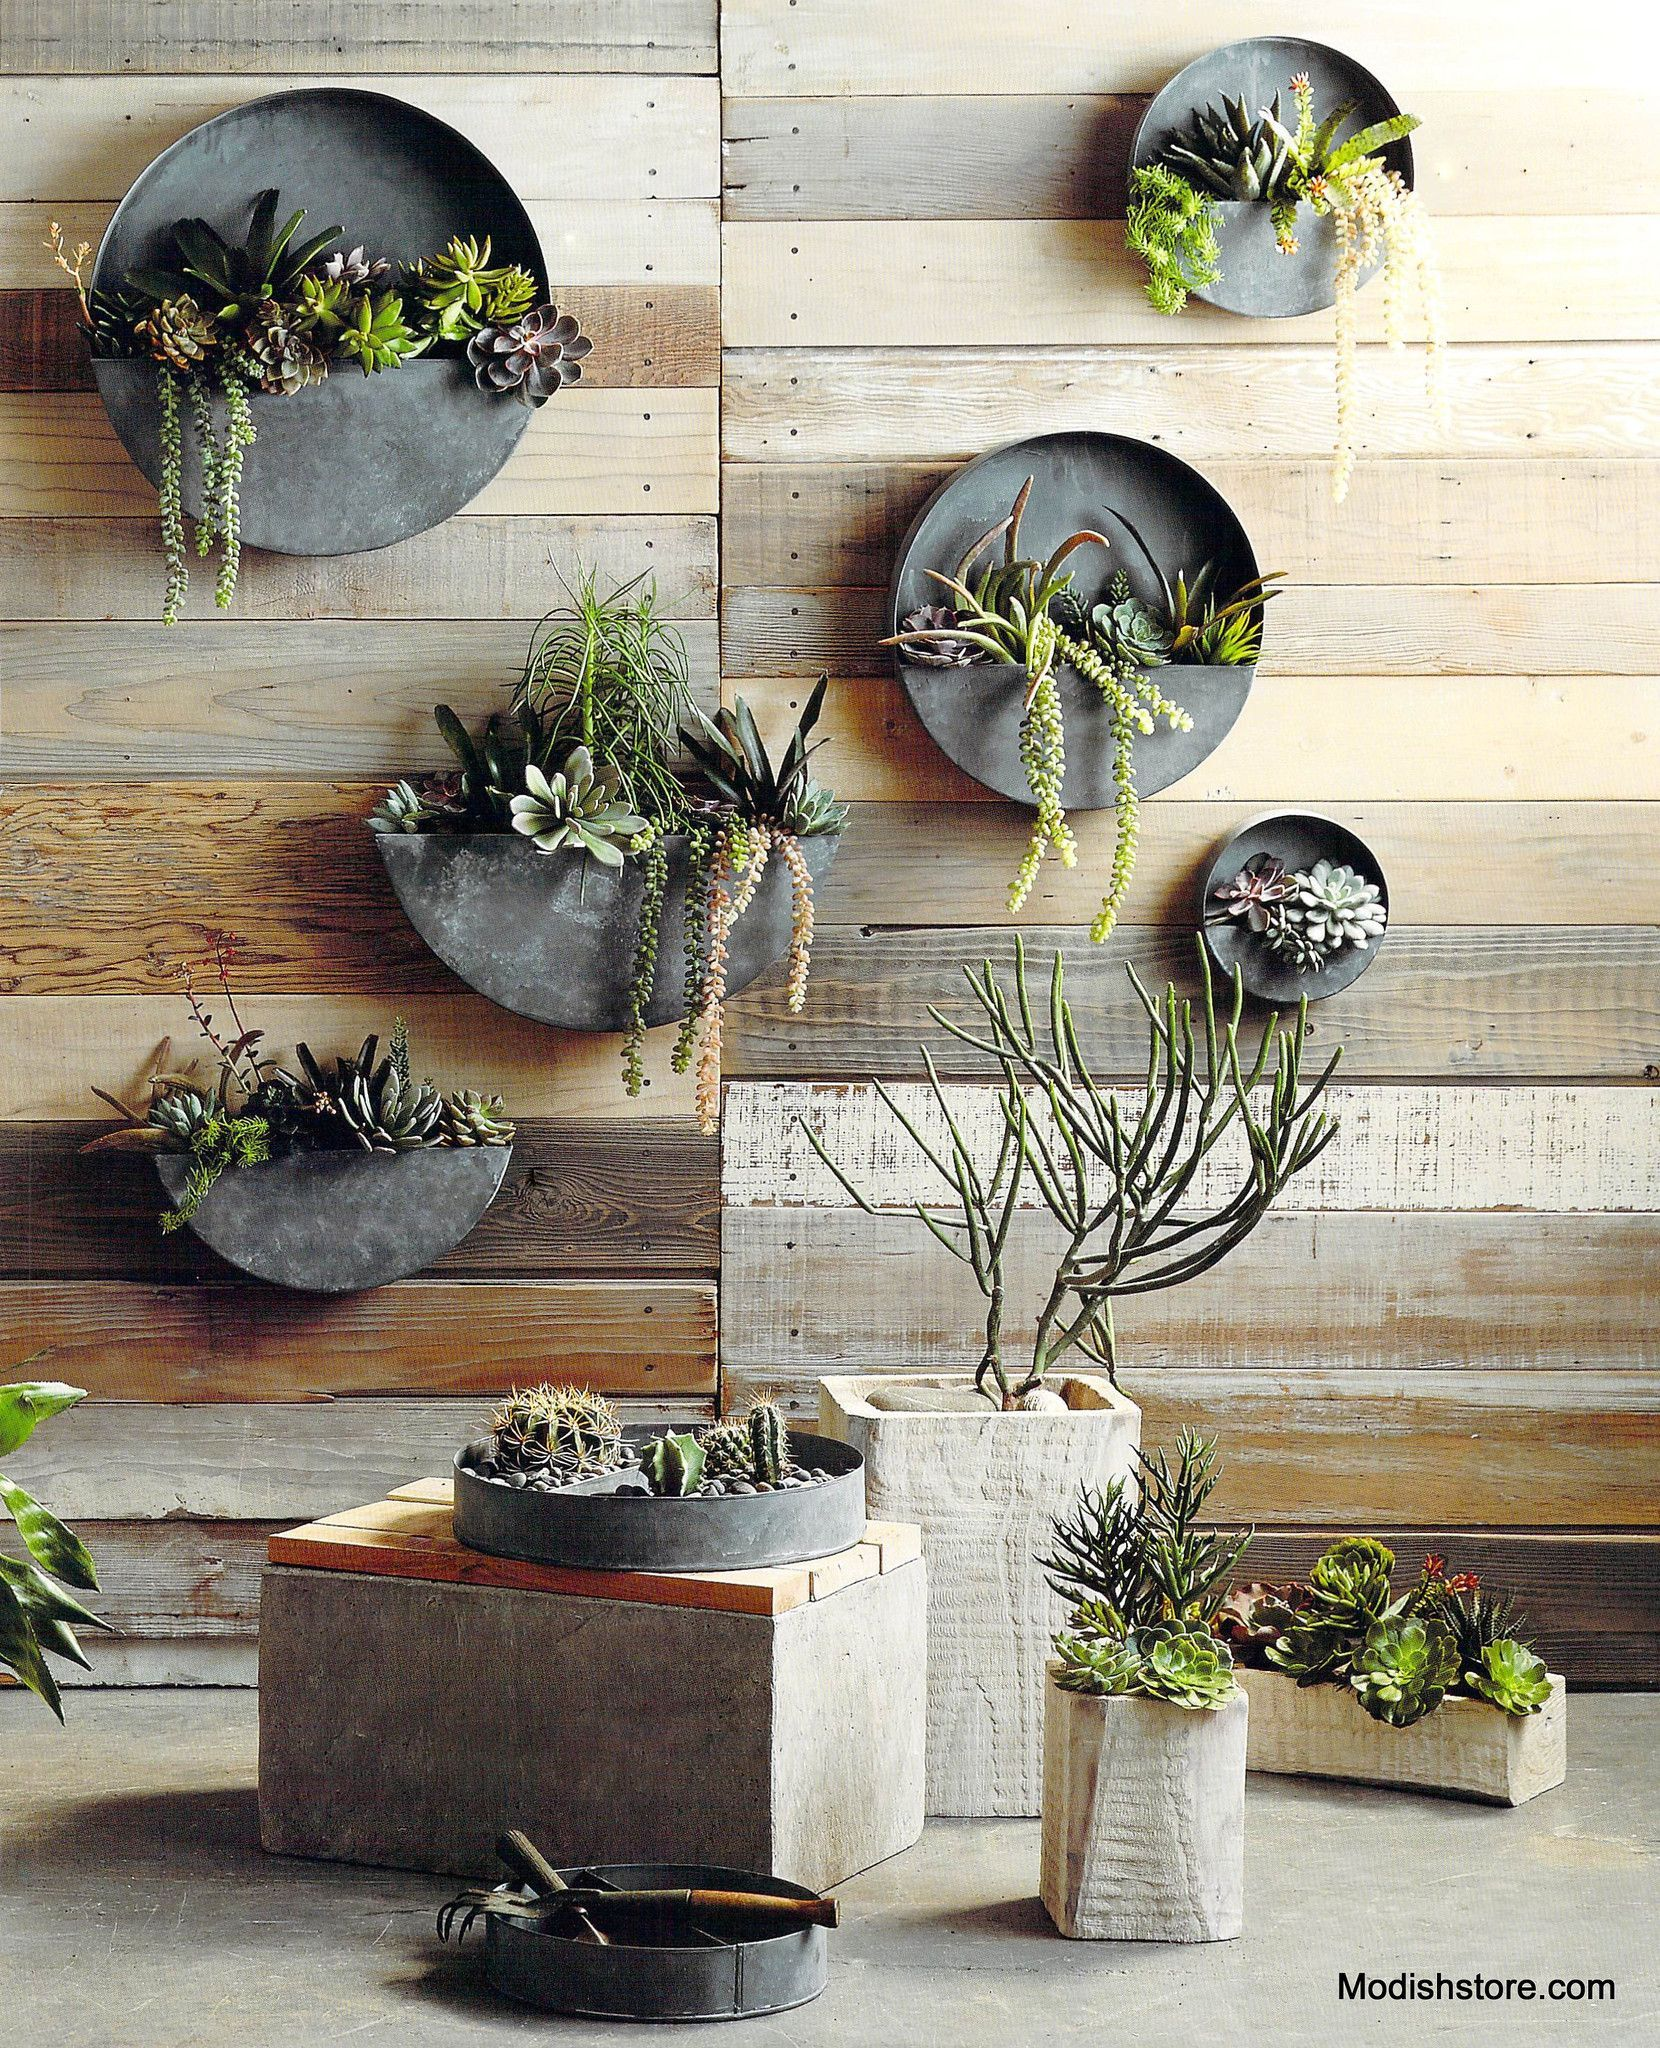 Roost Orbea Zinc Circle Planters Are Made From Galvanized Iron With An Aged Zinc Finish Perfect For Succulents And Small Plants These Full And Half Circle